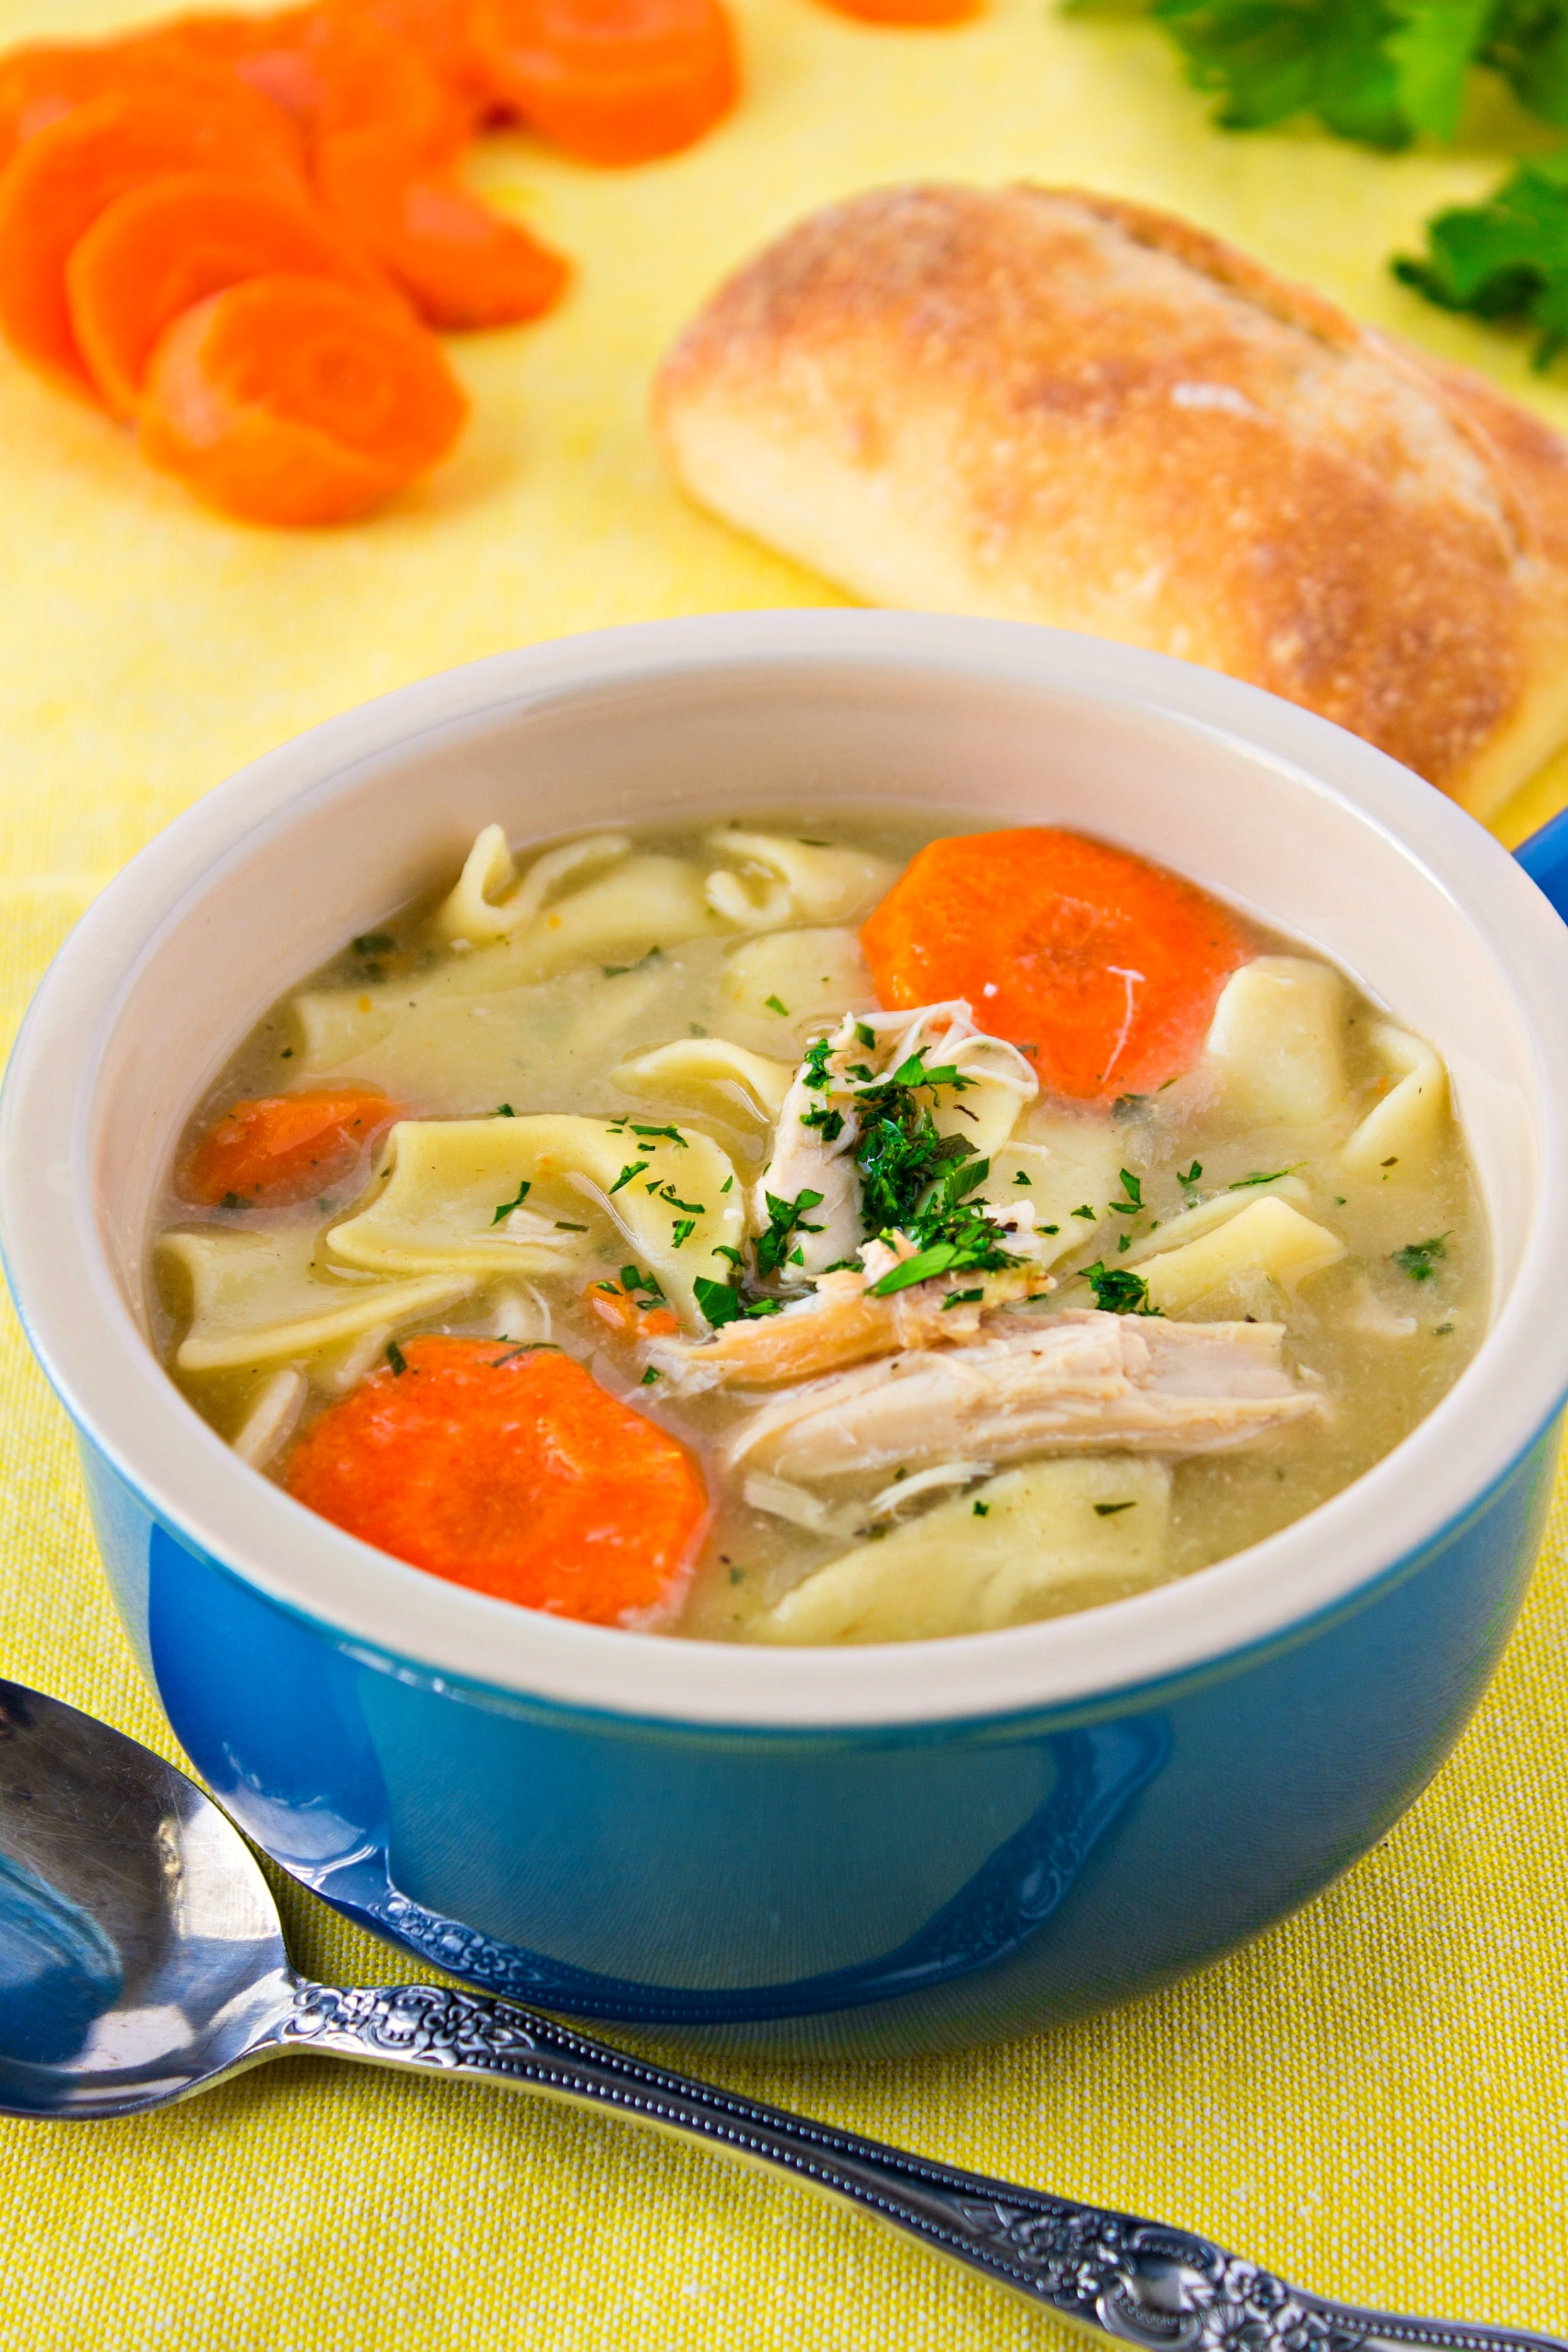 Bowl of Turkey Noodle Soup with bread and carrots in the background